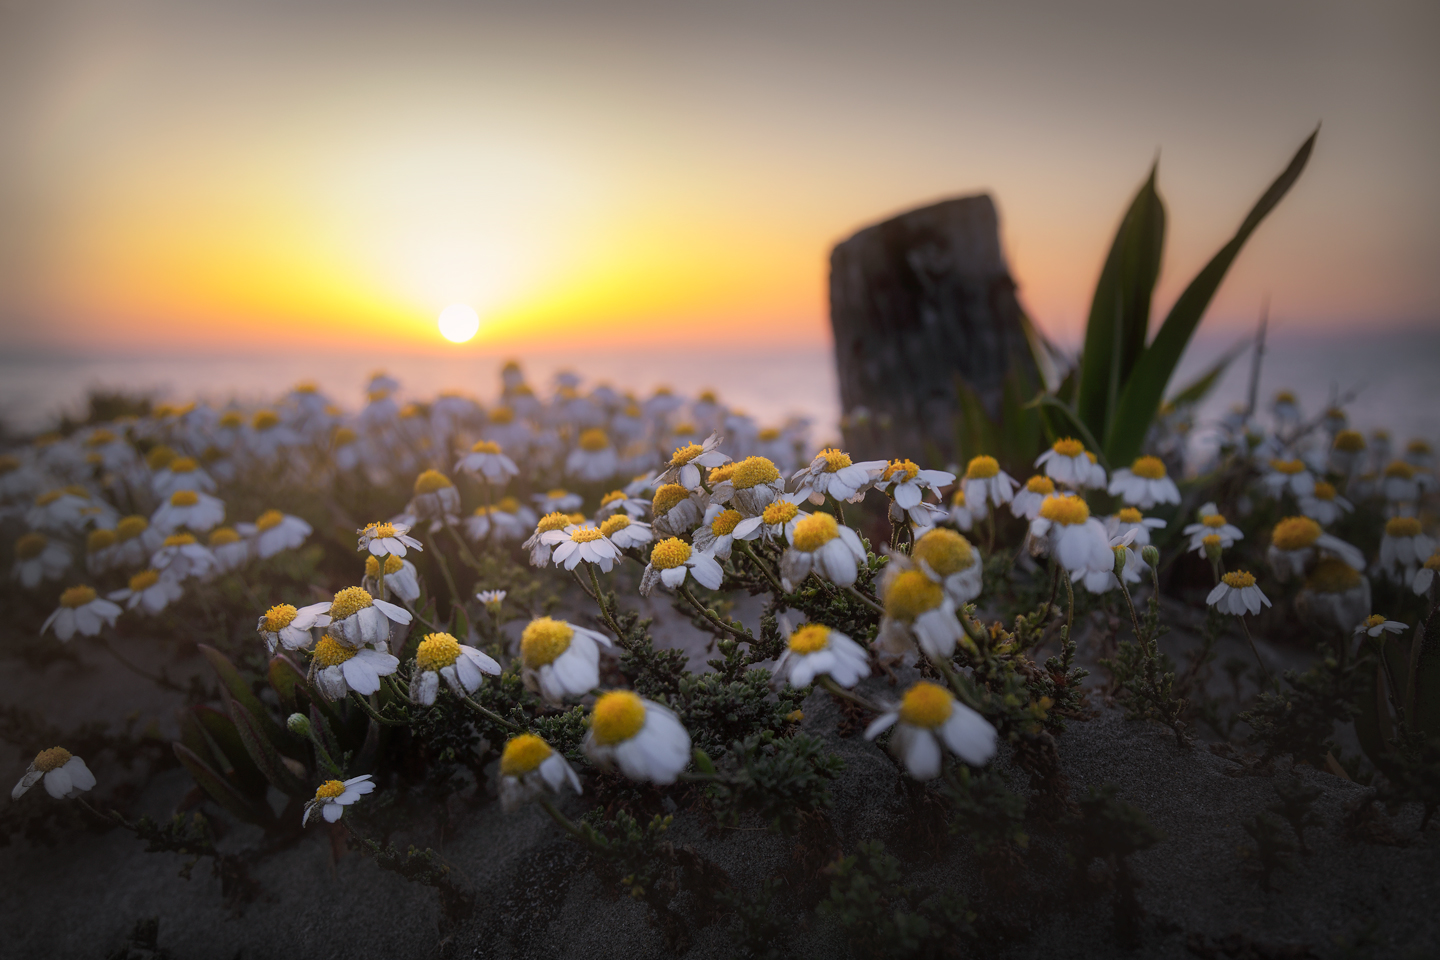 The sunset attracts Daisies ...